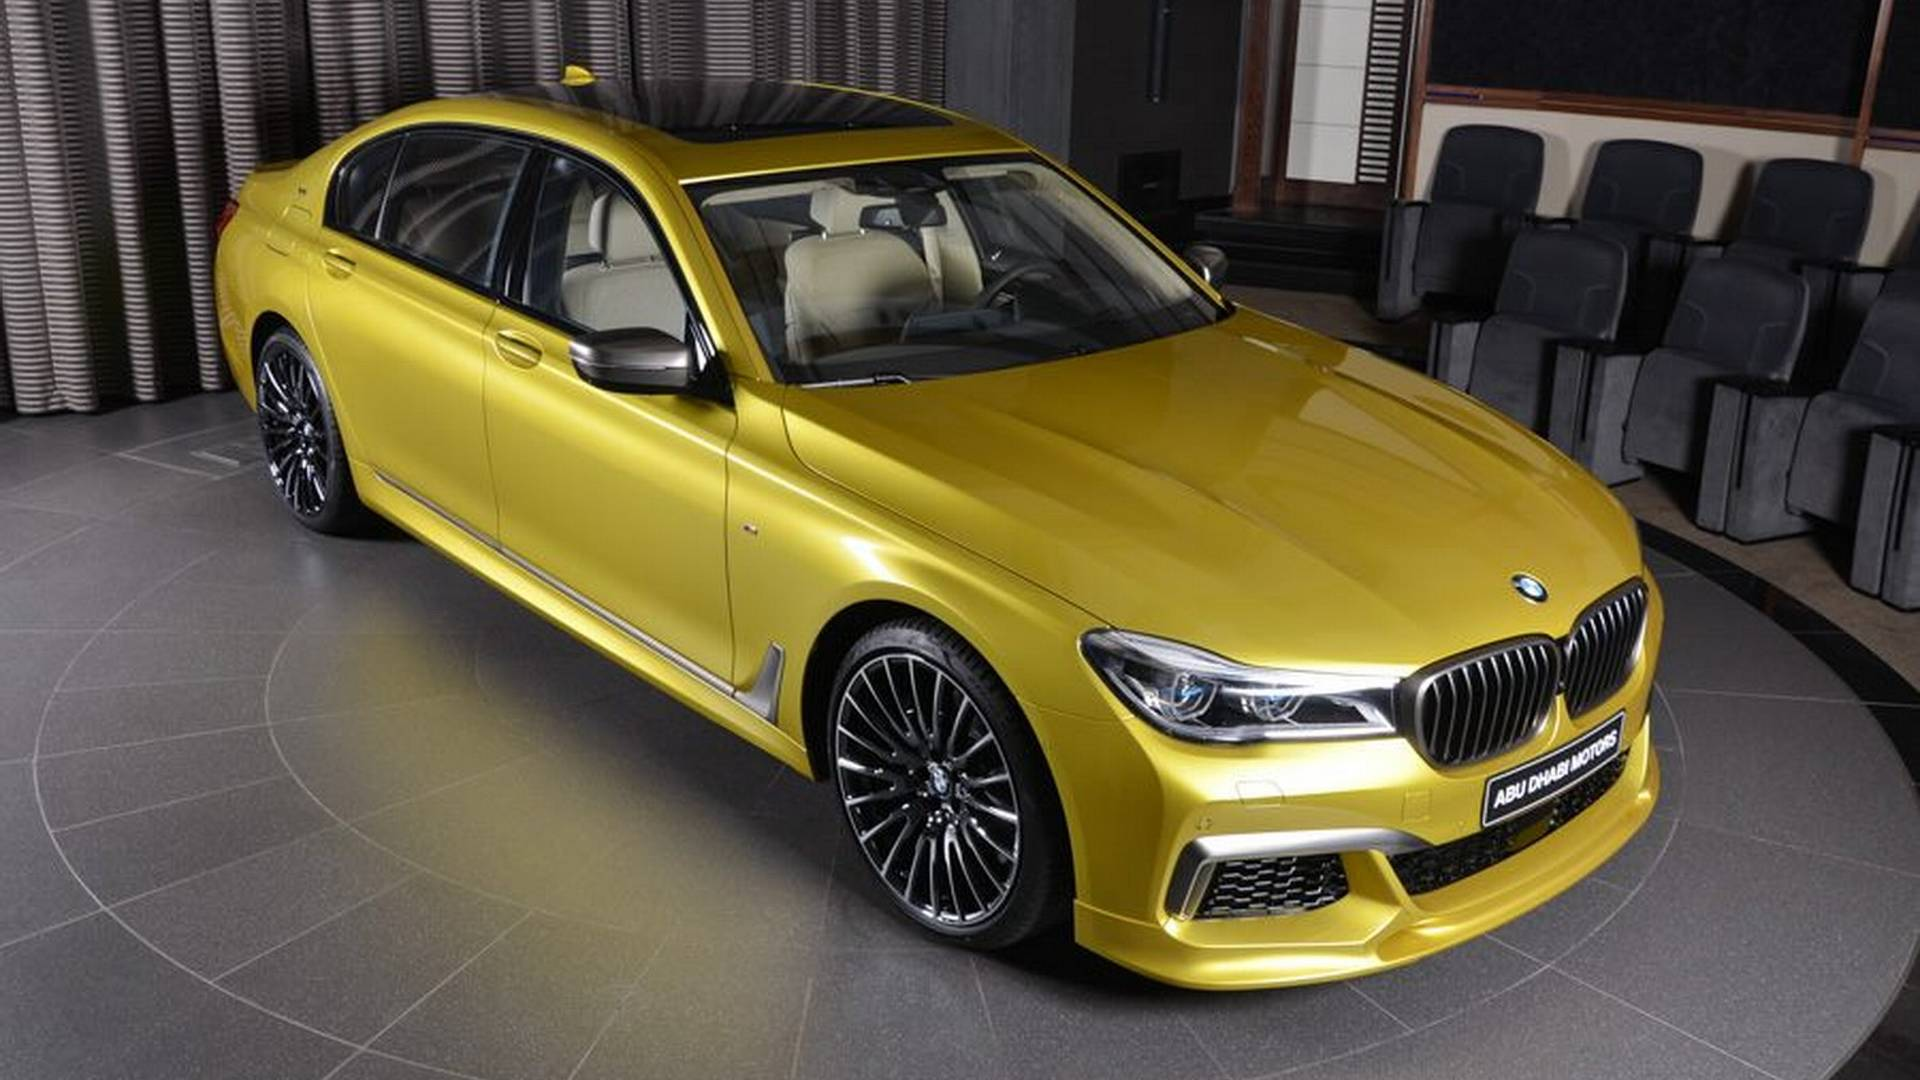 BMW_M60Li_Austin_Yellow_06